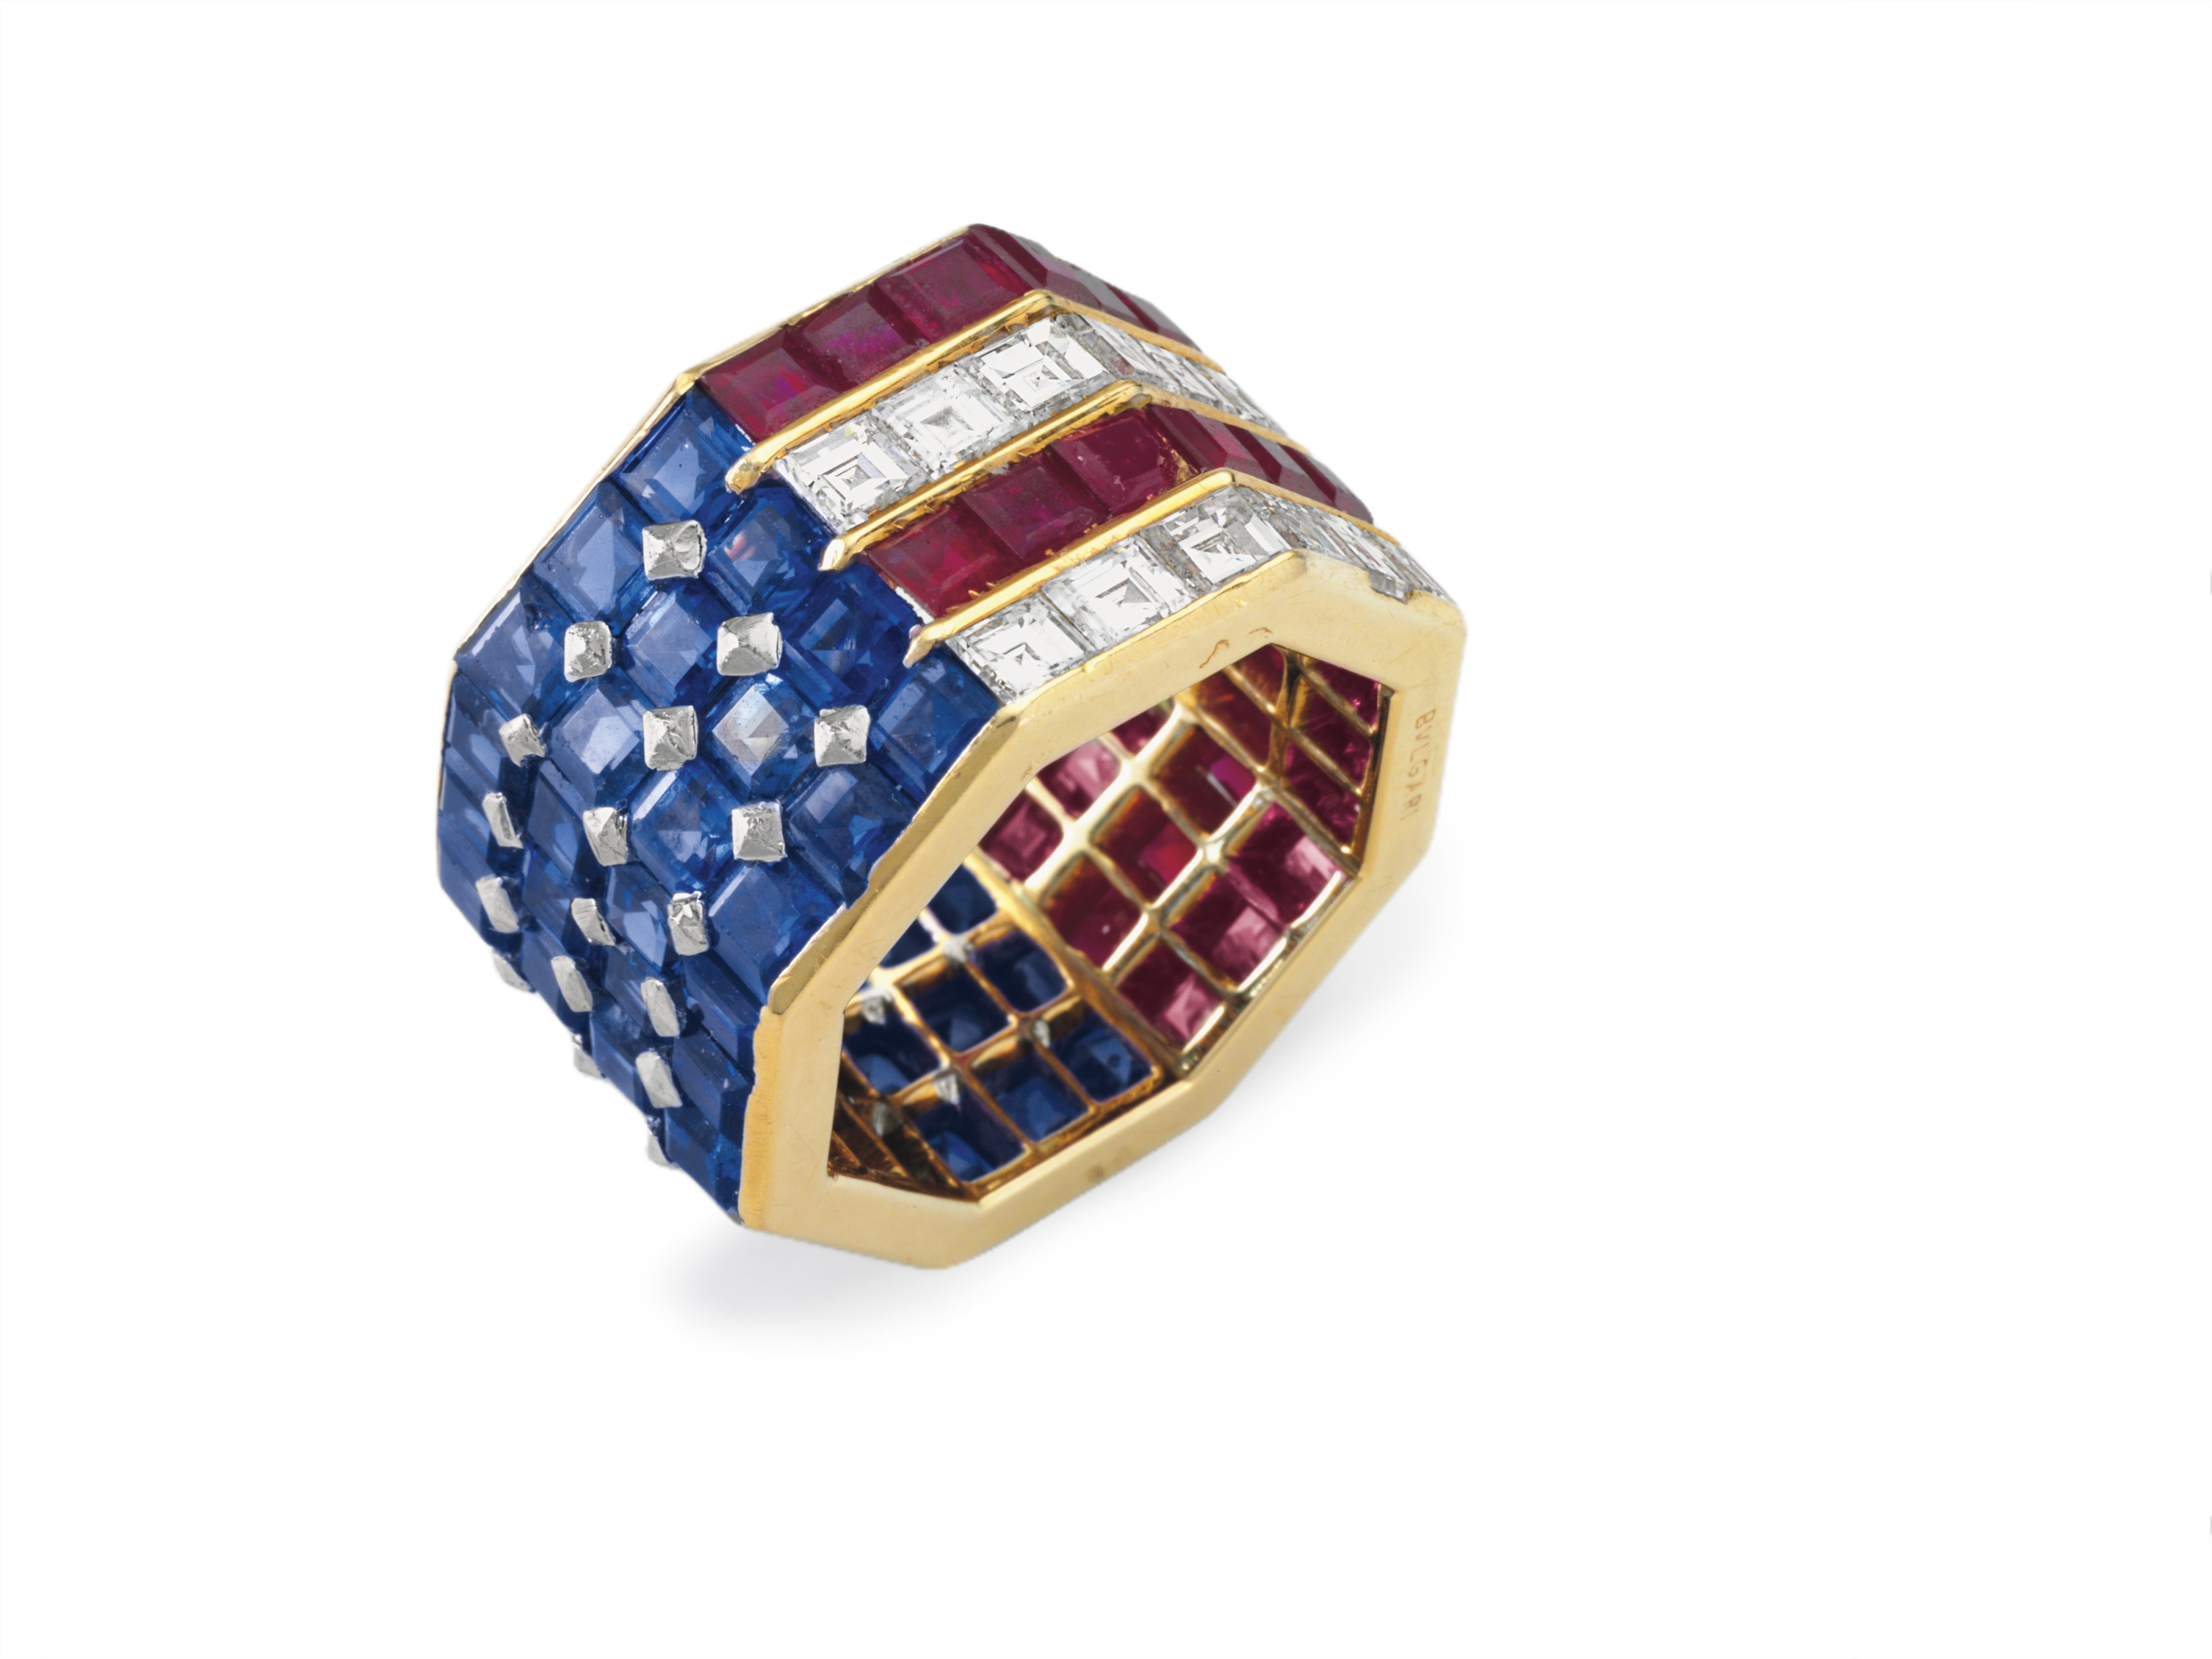 A Bulgari-made ring owned by Nancy Reagan sold for an impressive $319,500 at Christie's this week.